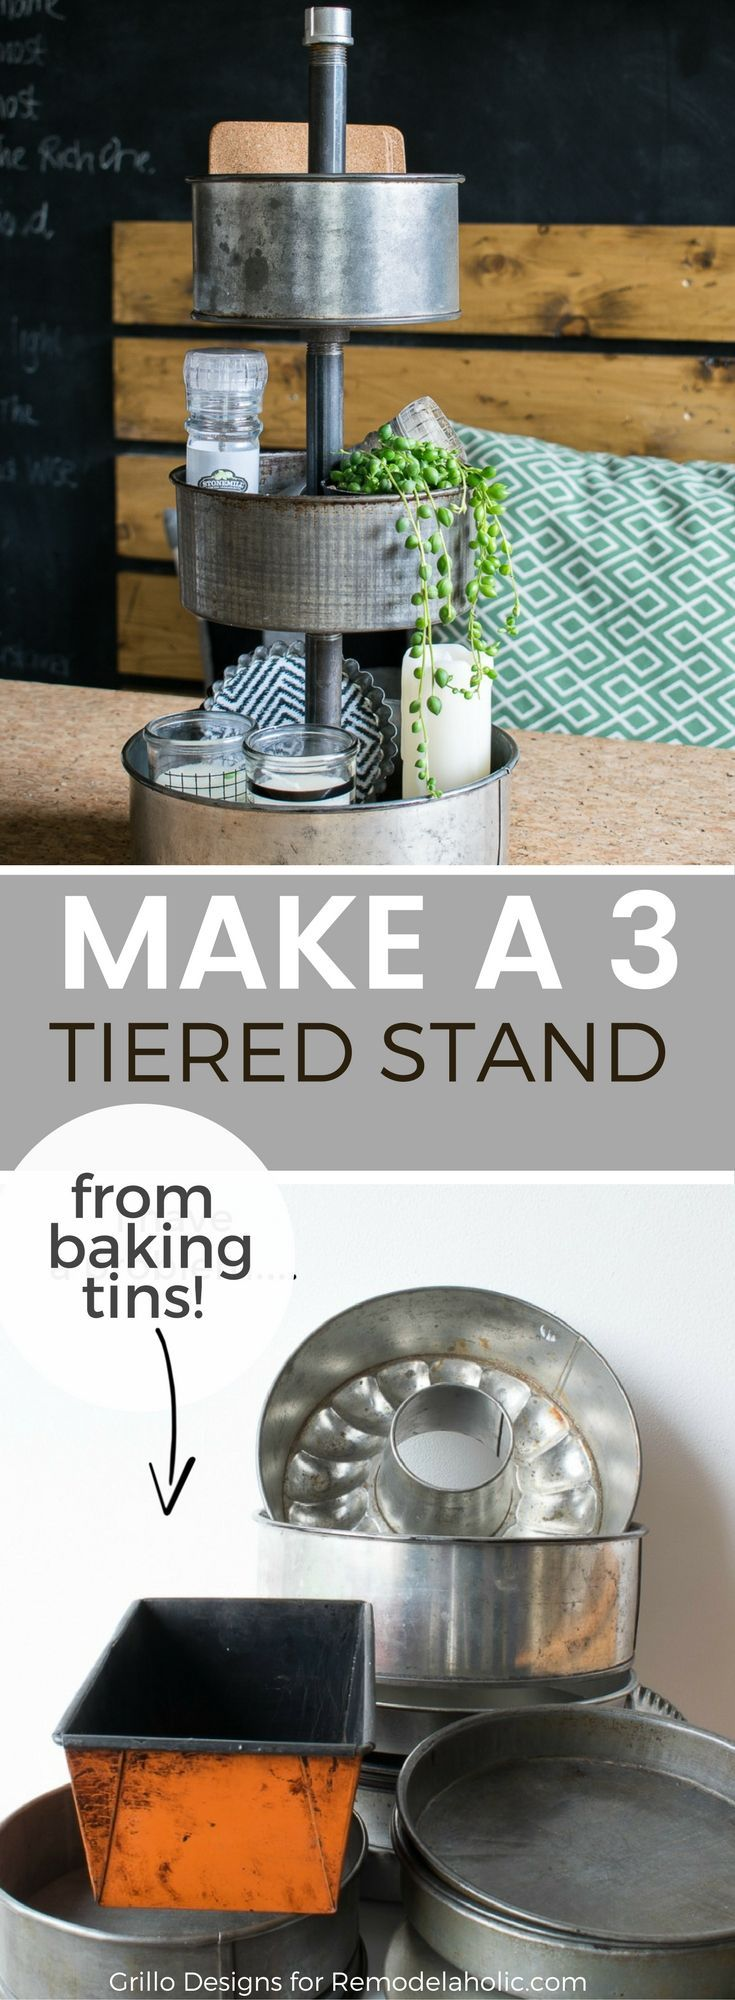 Three tiered stands are all the rage right now - especially metal industrial style trays that rotate . .. like this one! Learn how I made it over on Remodelaholic!